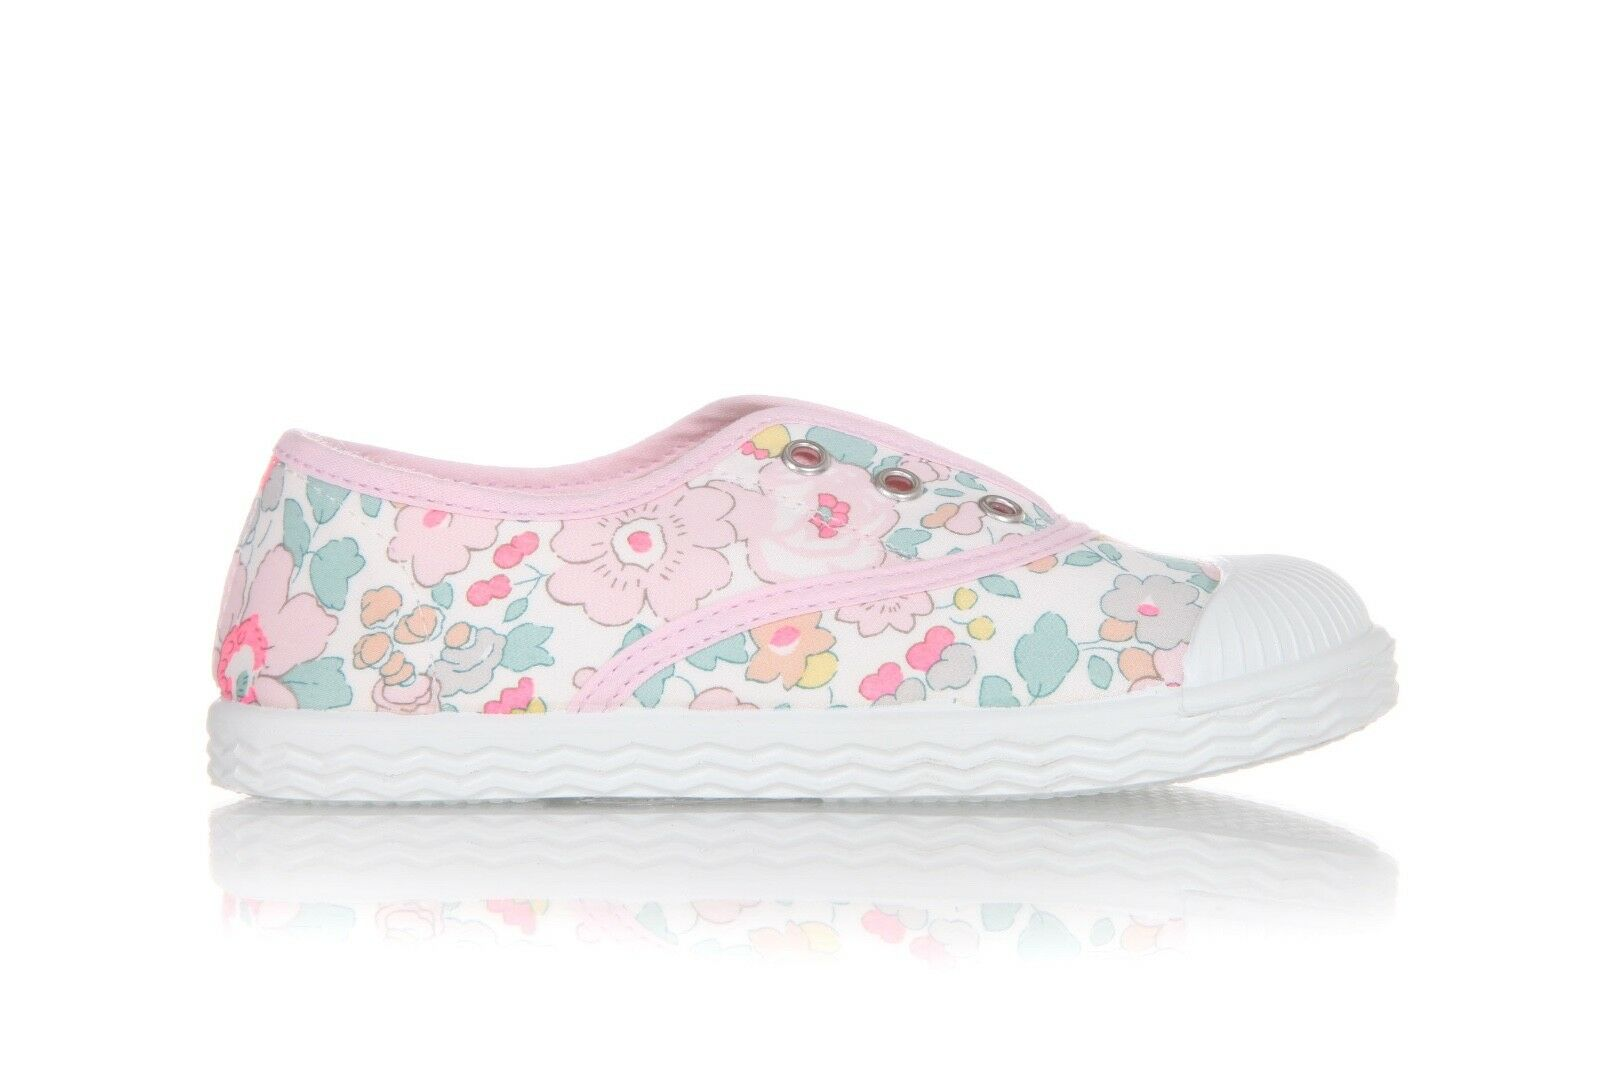 JACADI Floral Sneakers Size 26 (9.5) New